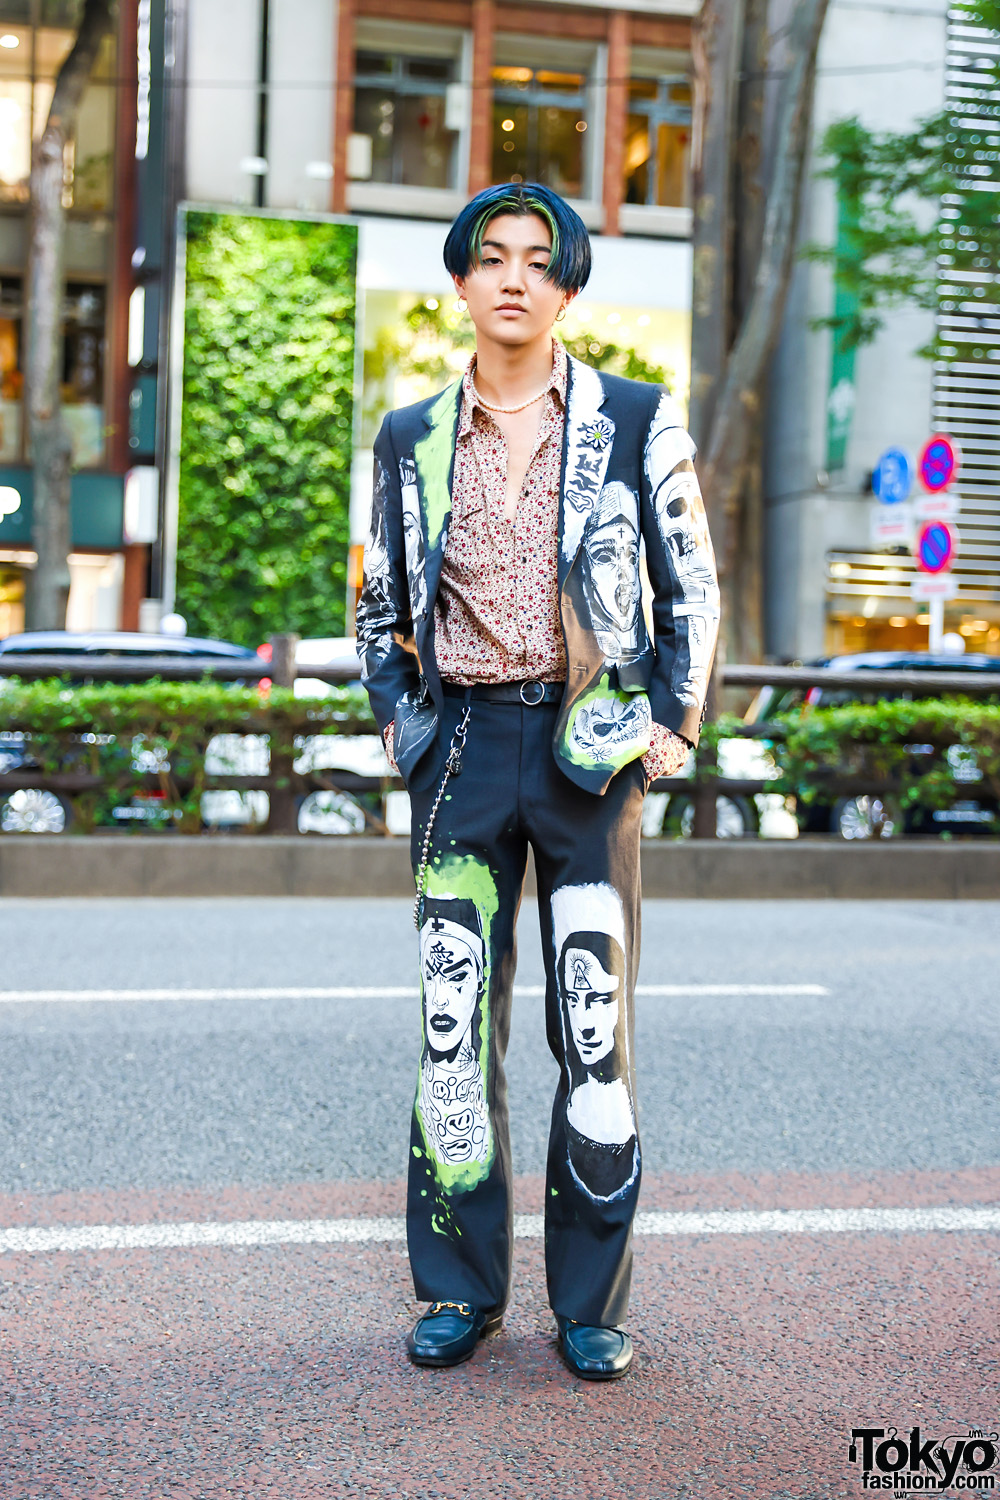 Remake Suit Style w/ Blue Green Hair, Pearl Necklace, Hand-Painted Suit, Vintage Floral Shirt & Leather Loafers